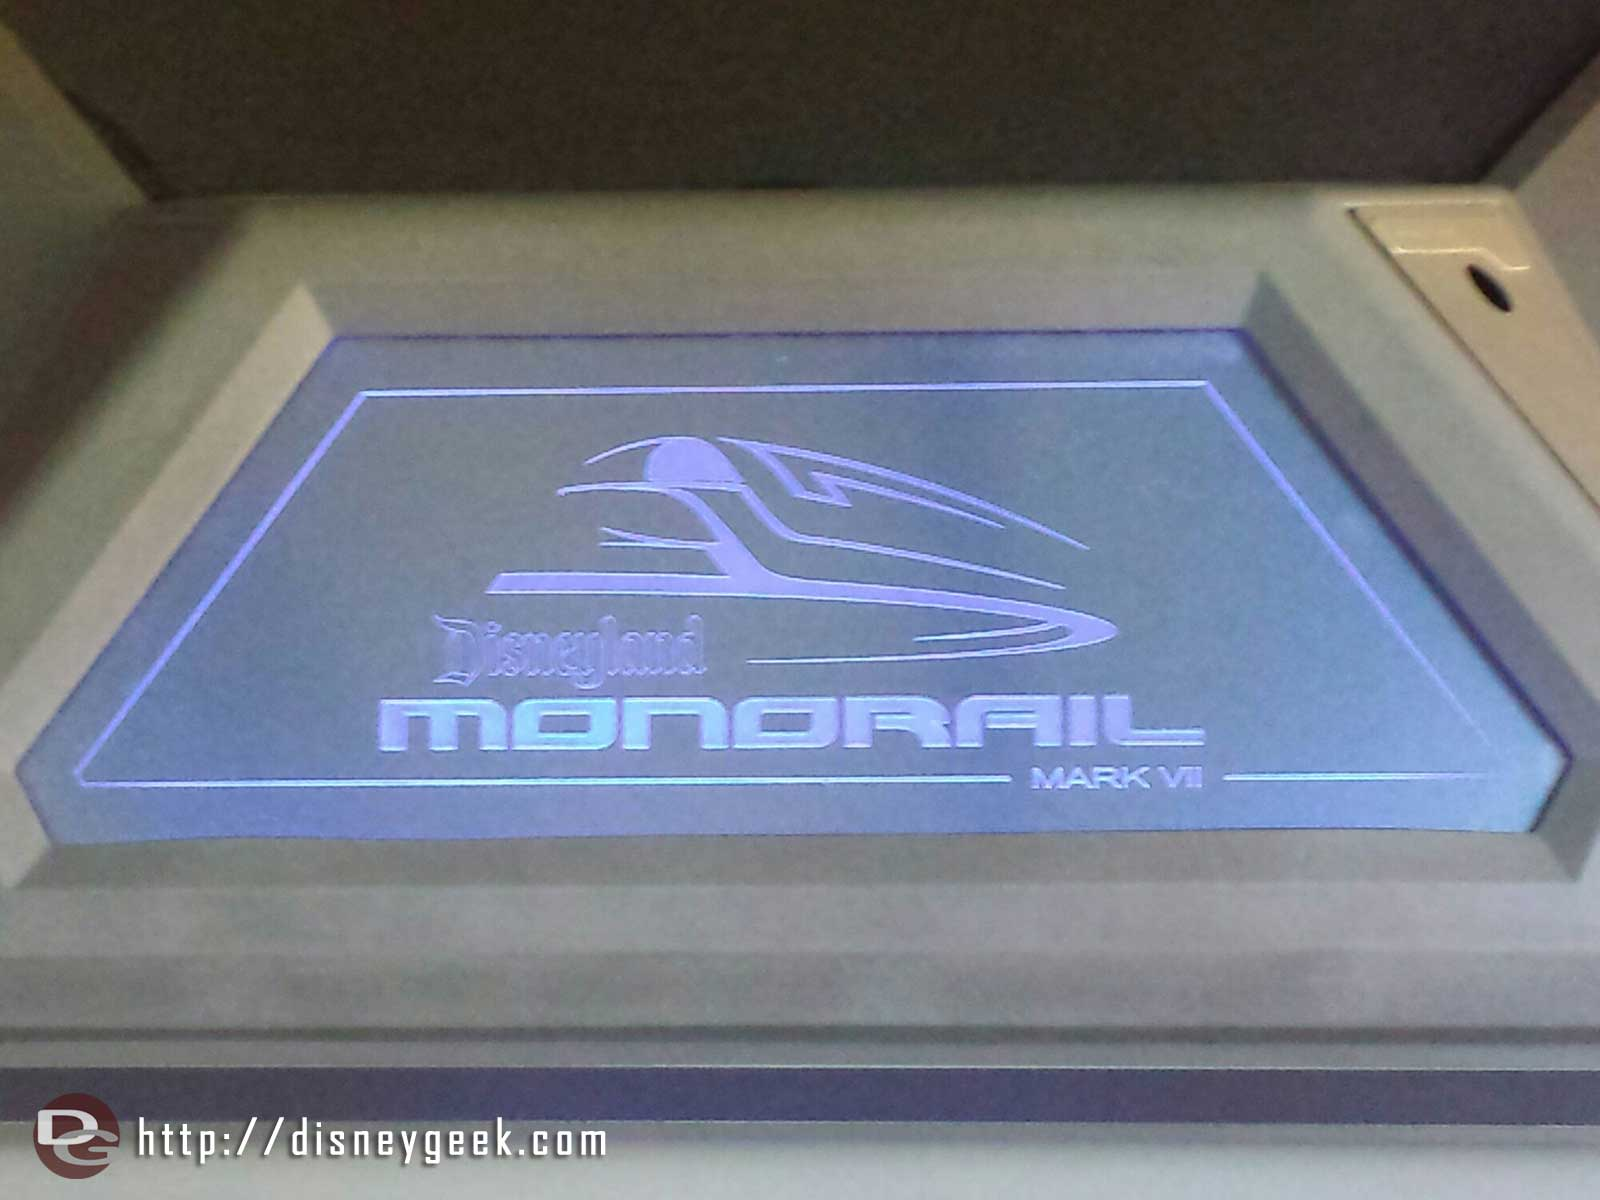 #Disneyland Monorail Mark VII sign